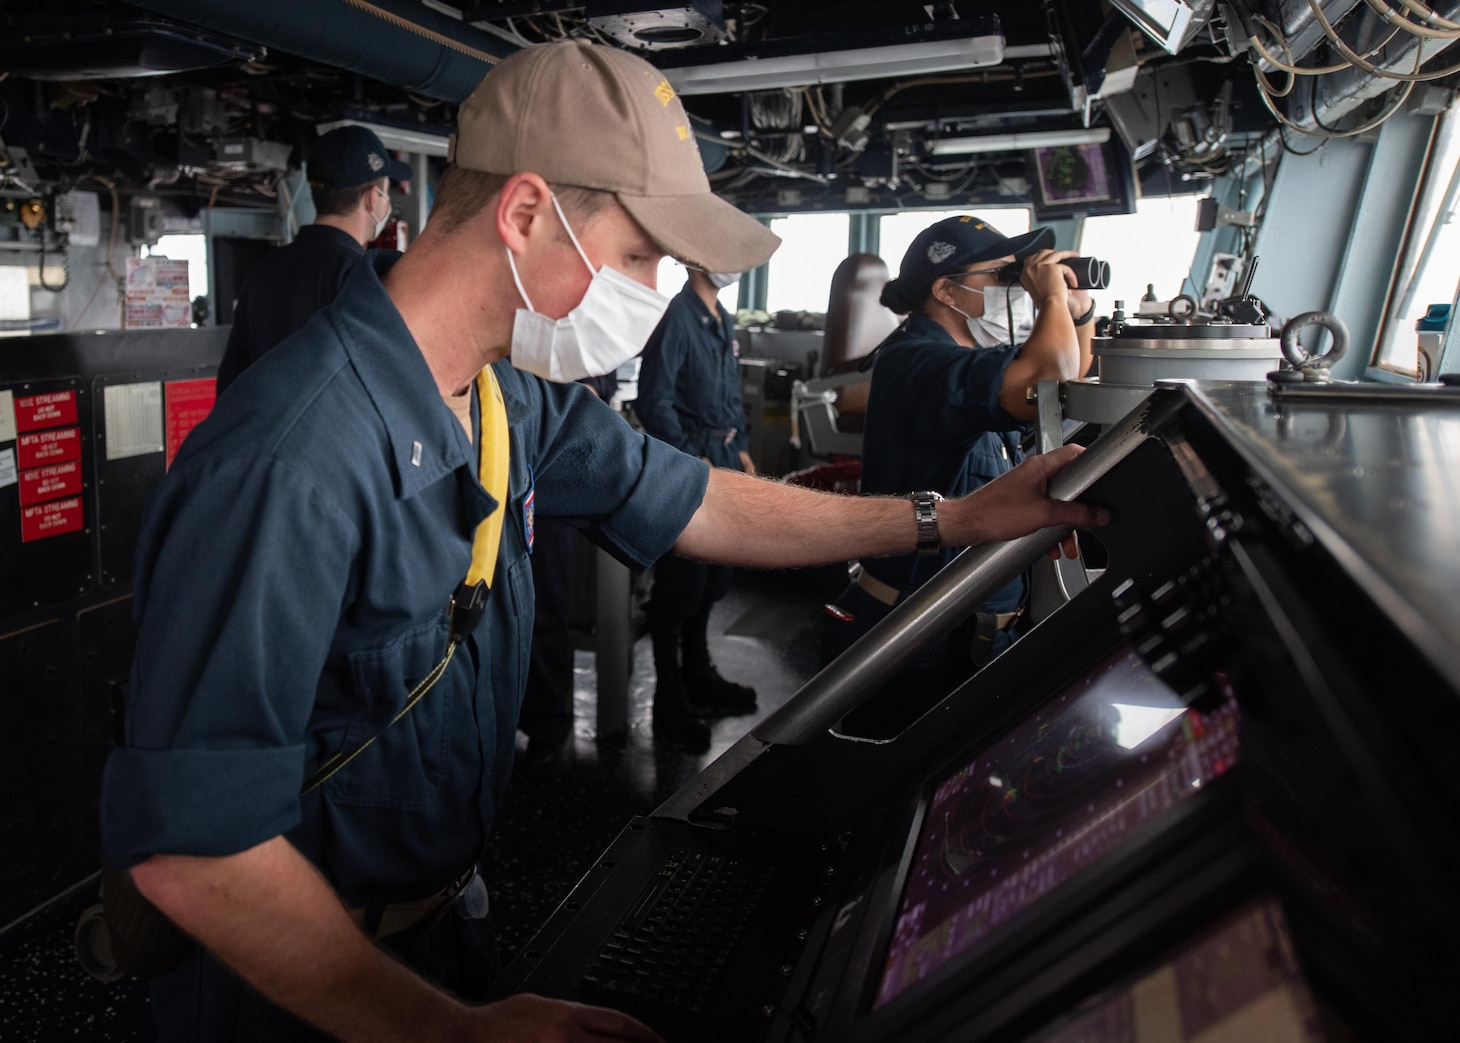 TAIWAN STRAIT (Nov. 20, 2020) – Lt. j. g. Benjamin Pershall, from Annapolis, Md., uses the Automated Radar Plotting Aid (ARPA) on the bridge of the guided-missile destroyer USS Barry (DDG 62) as the ship conducts routine underway operations in the Taiwan Strait. Barry is assigned to Destroyer Squadron (DESRON) 15, the Navy's largest forward-deployed DESRON and the U.S. 7th Fleet's principal surface force, forward-deployed to the U.S. 7th Fleet area of operations in support of a free and open Indo-Pacific. (U.S. Navy photo by Mass Communication Specialist Seaman Molly Crawford)